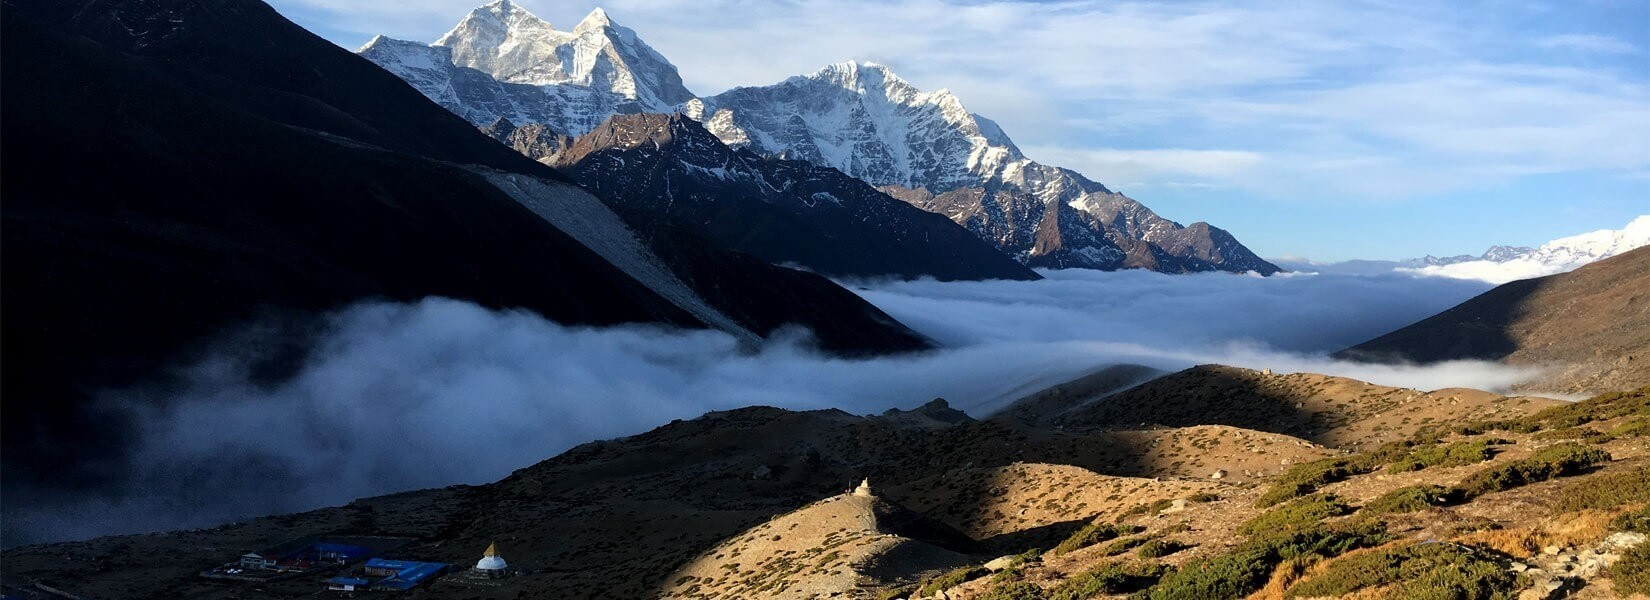 Everest Base Camp Weather for 12 Months